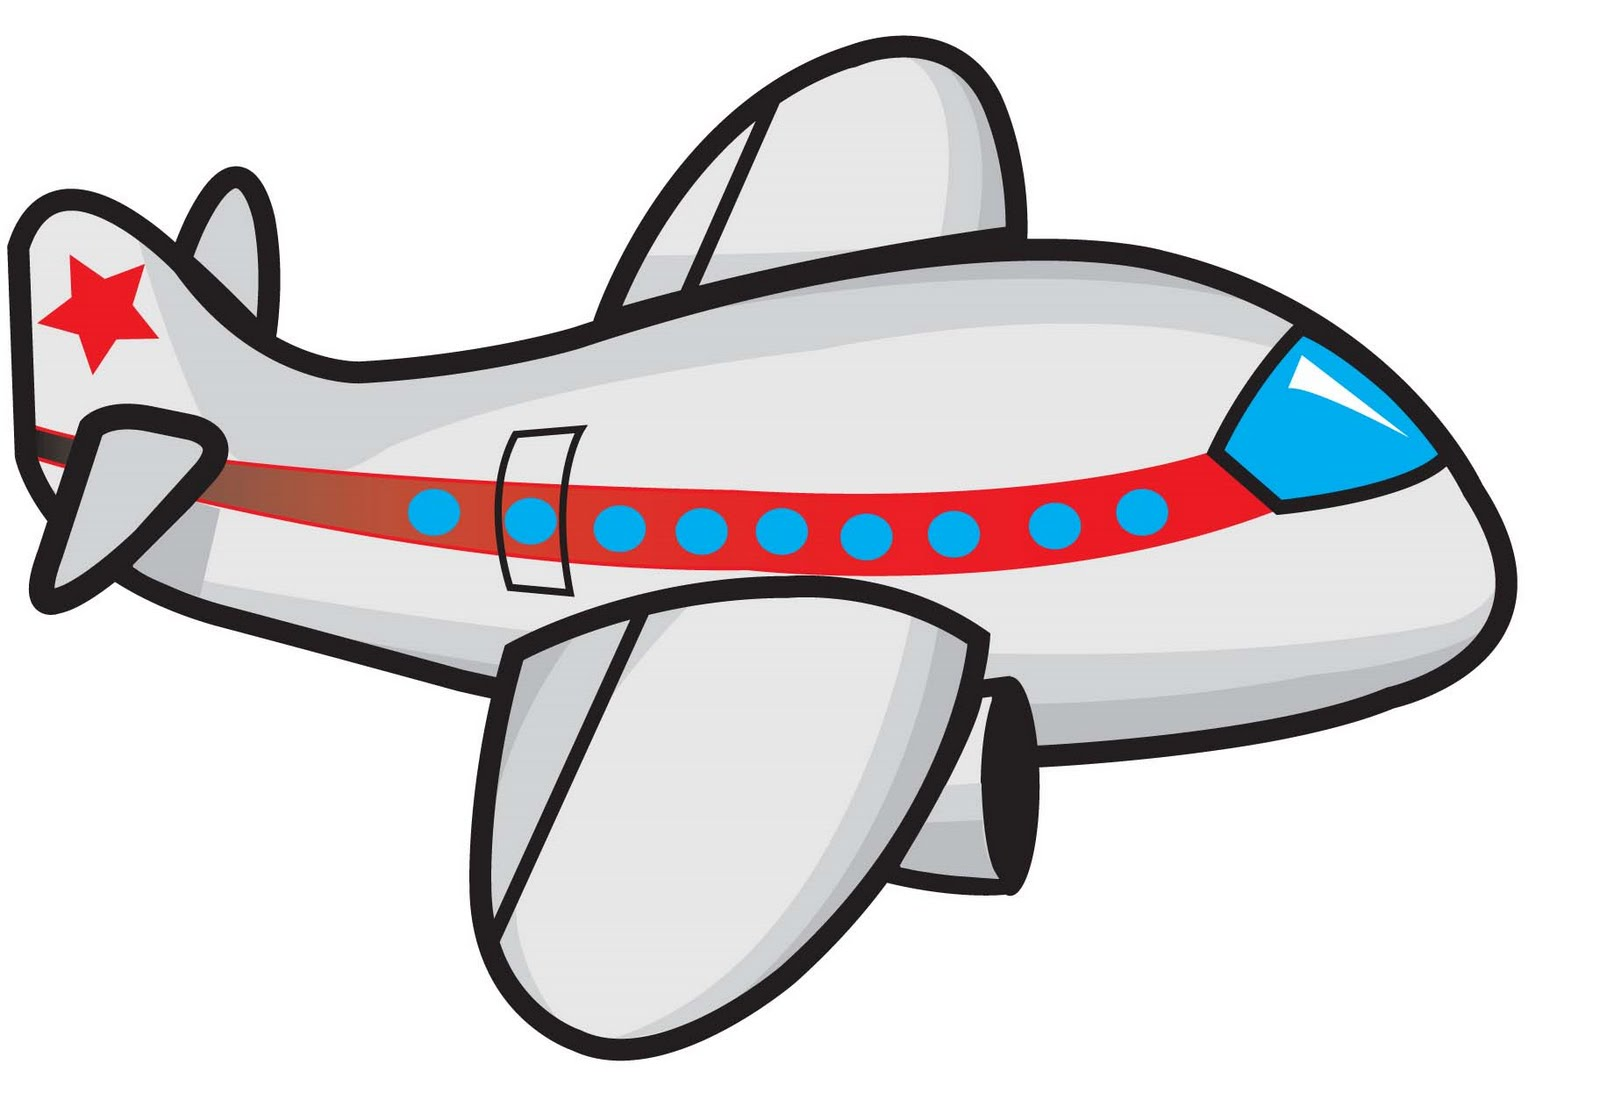 Cartoon Airplane Clipart   Clipart Panda   Free Clipart Images